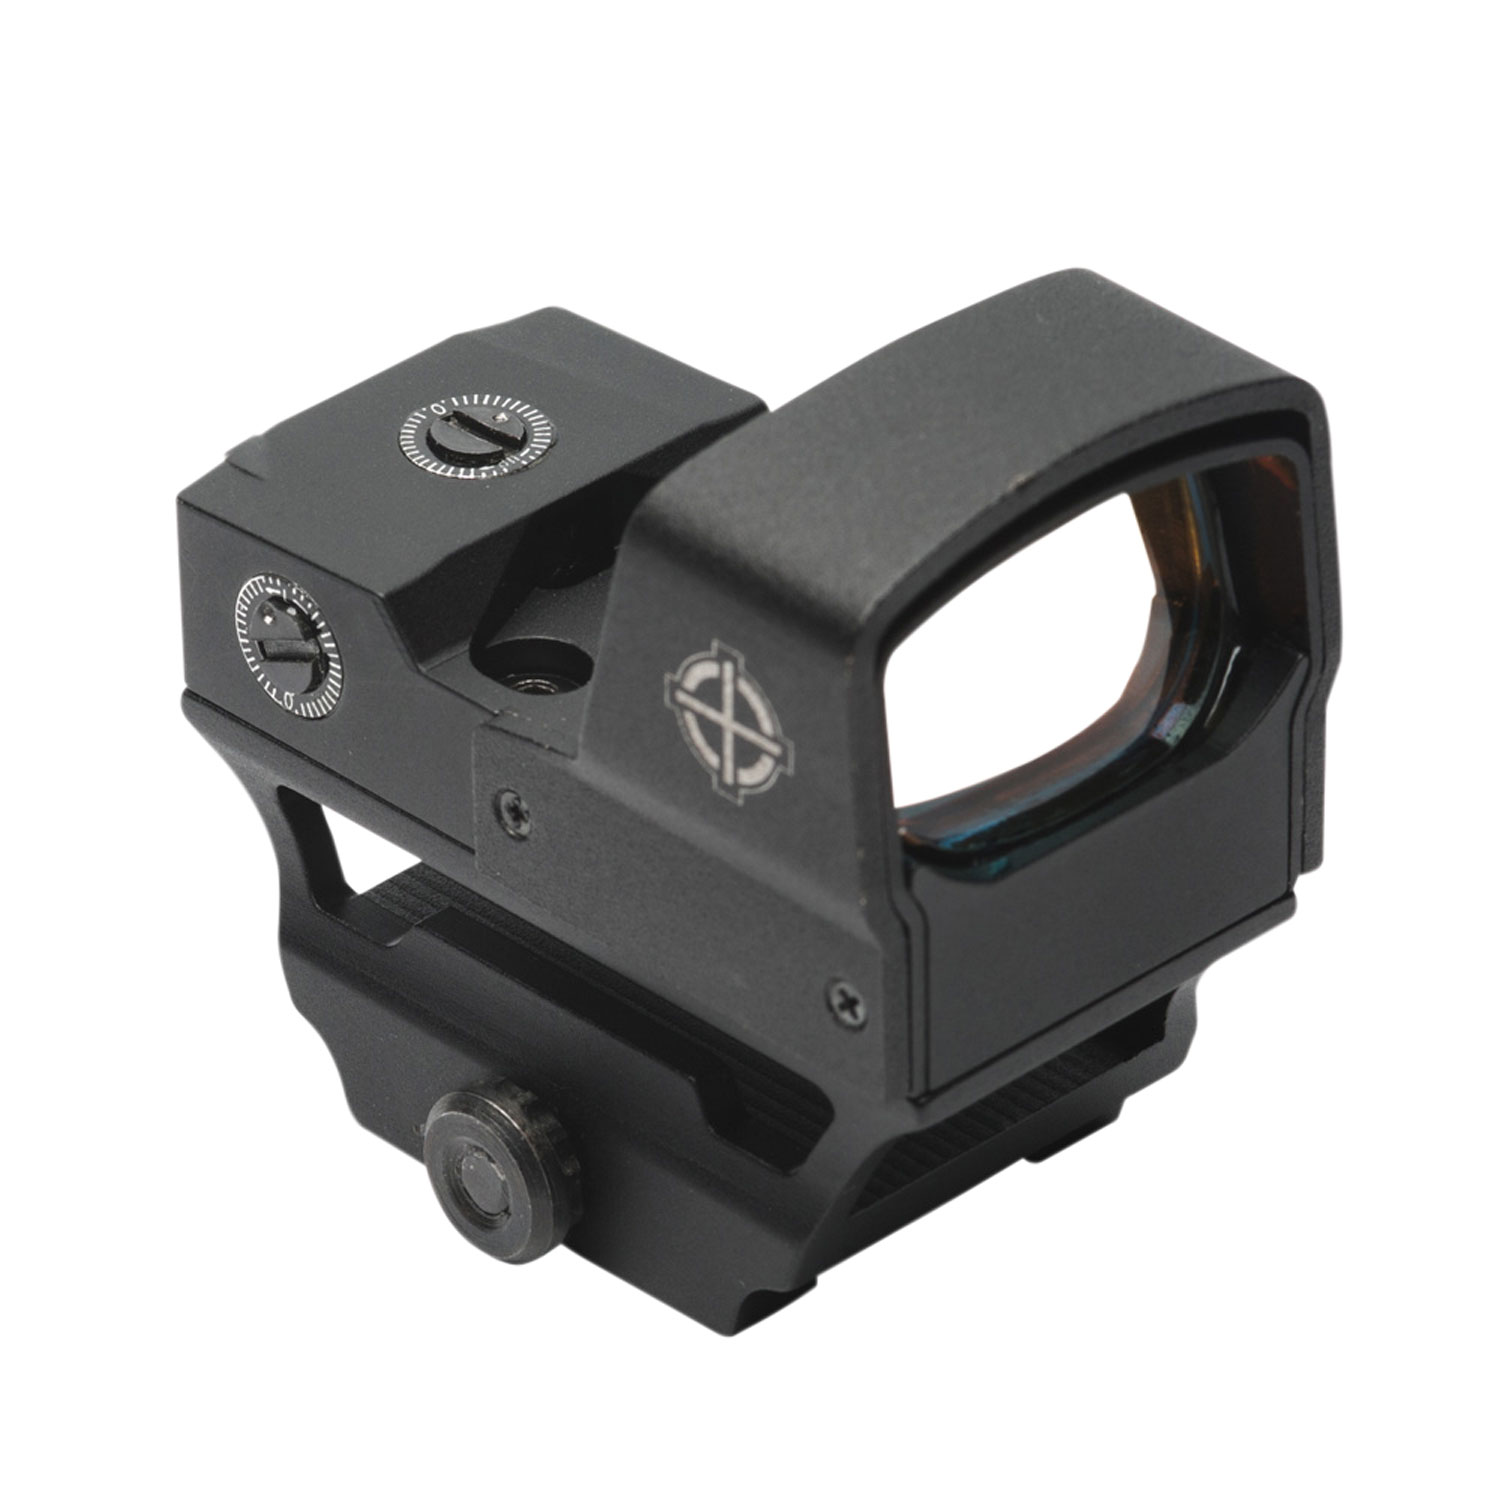 Sightmark SM26018 Core Shot A-Spec LQD 1x 28x18mm Obj 5 MOA Illuminated Red Dot Black CR1632 Lithium